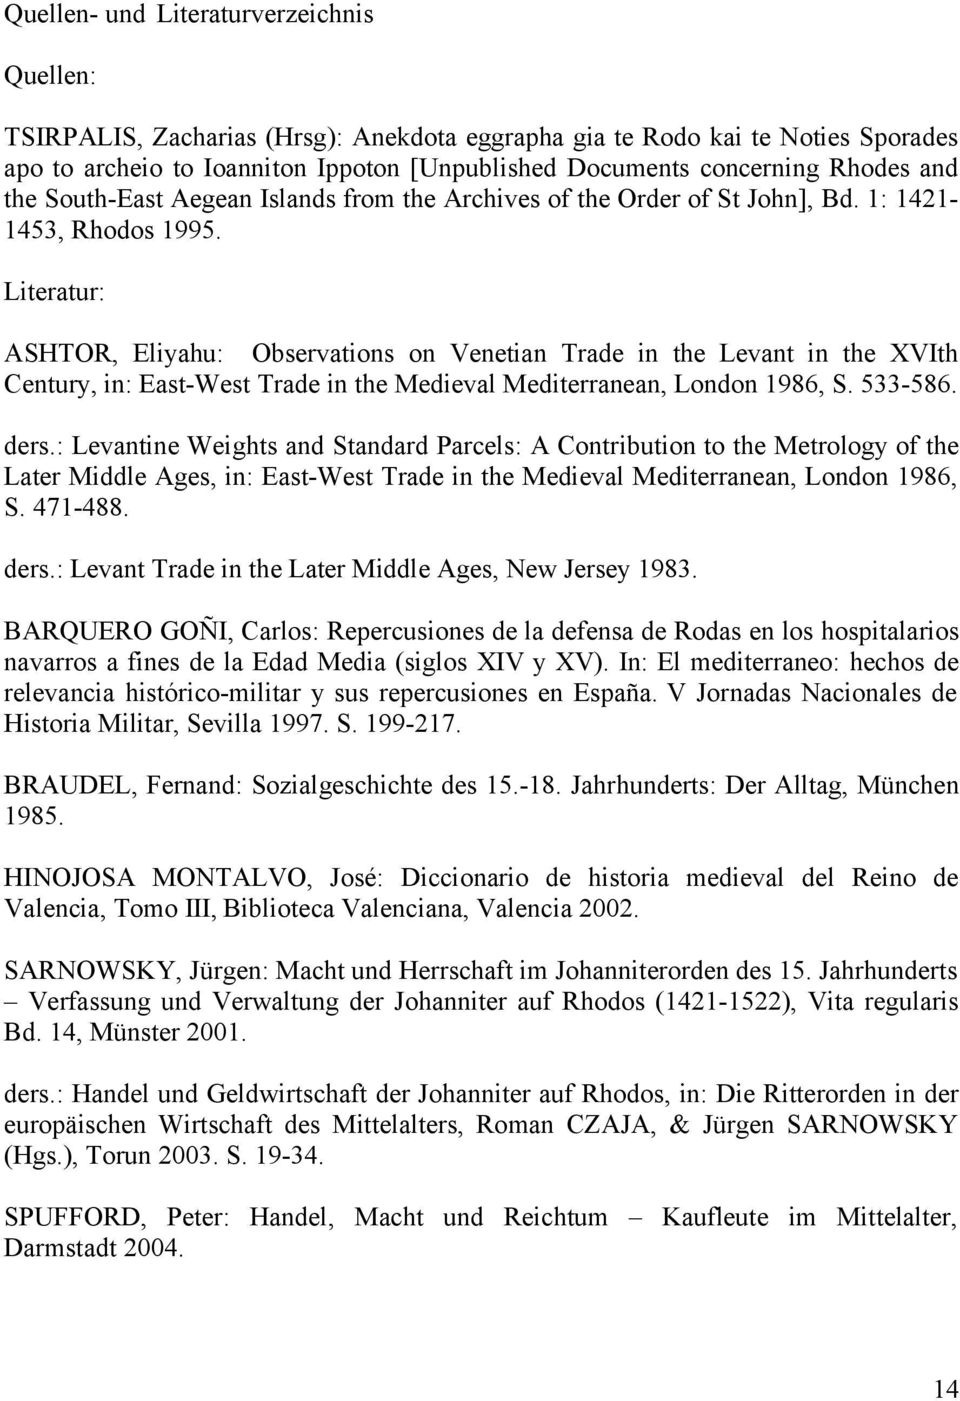 Literatur: ASHTOR, Eliyahu: Observations on Venetian Trade in the Levant in the XVIth Century, in: East-West Trade in the Medieval Mediterranean, London 1986, S. 533-586. ders.